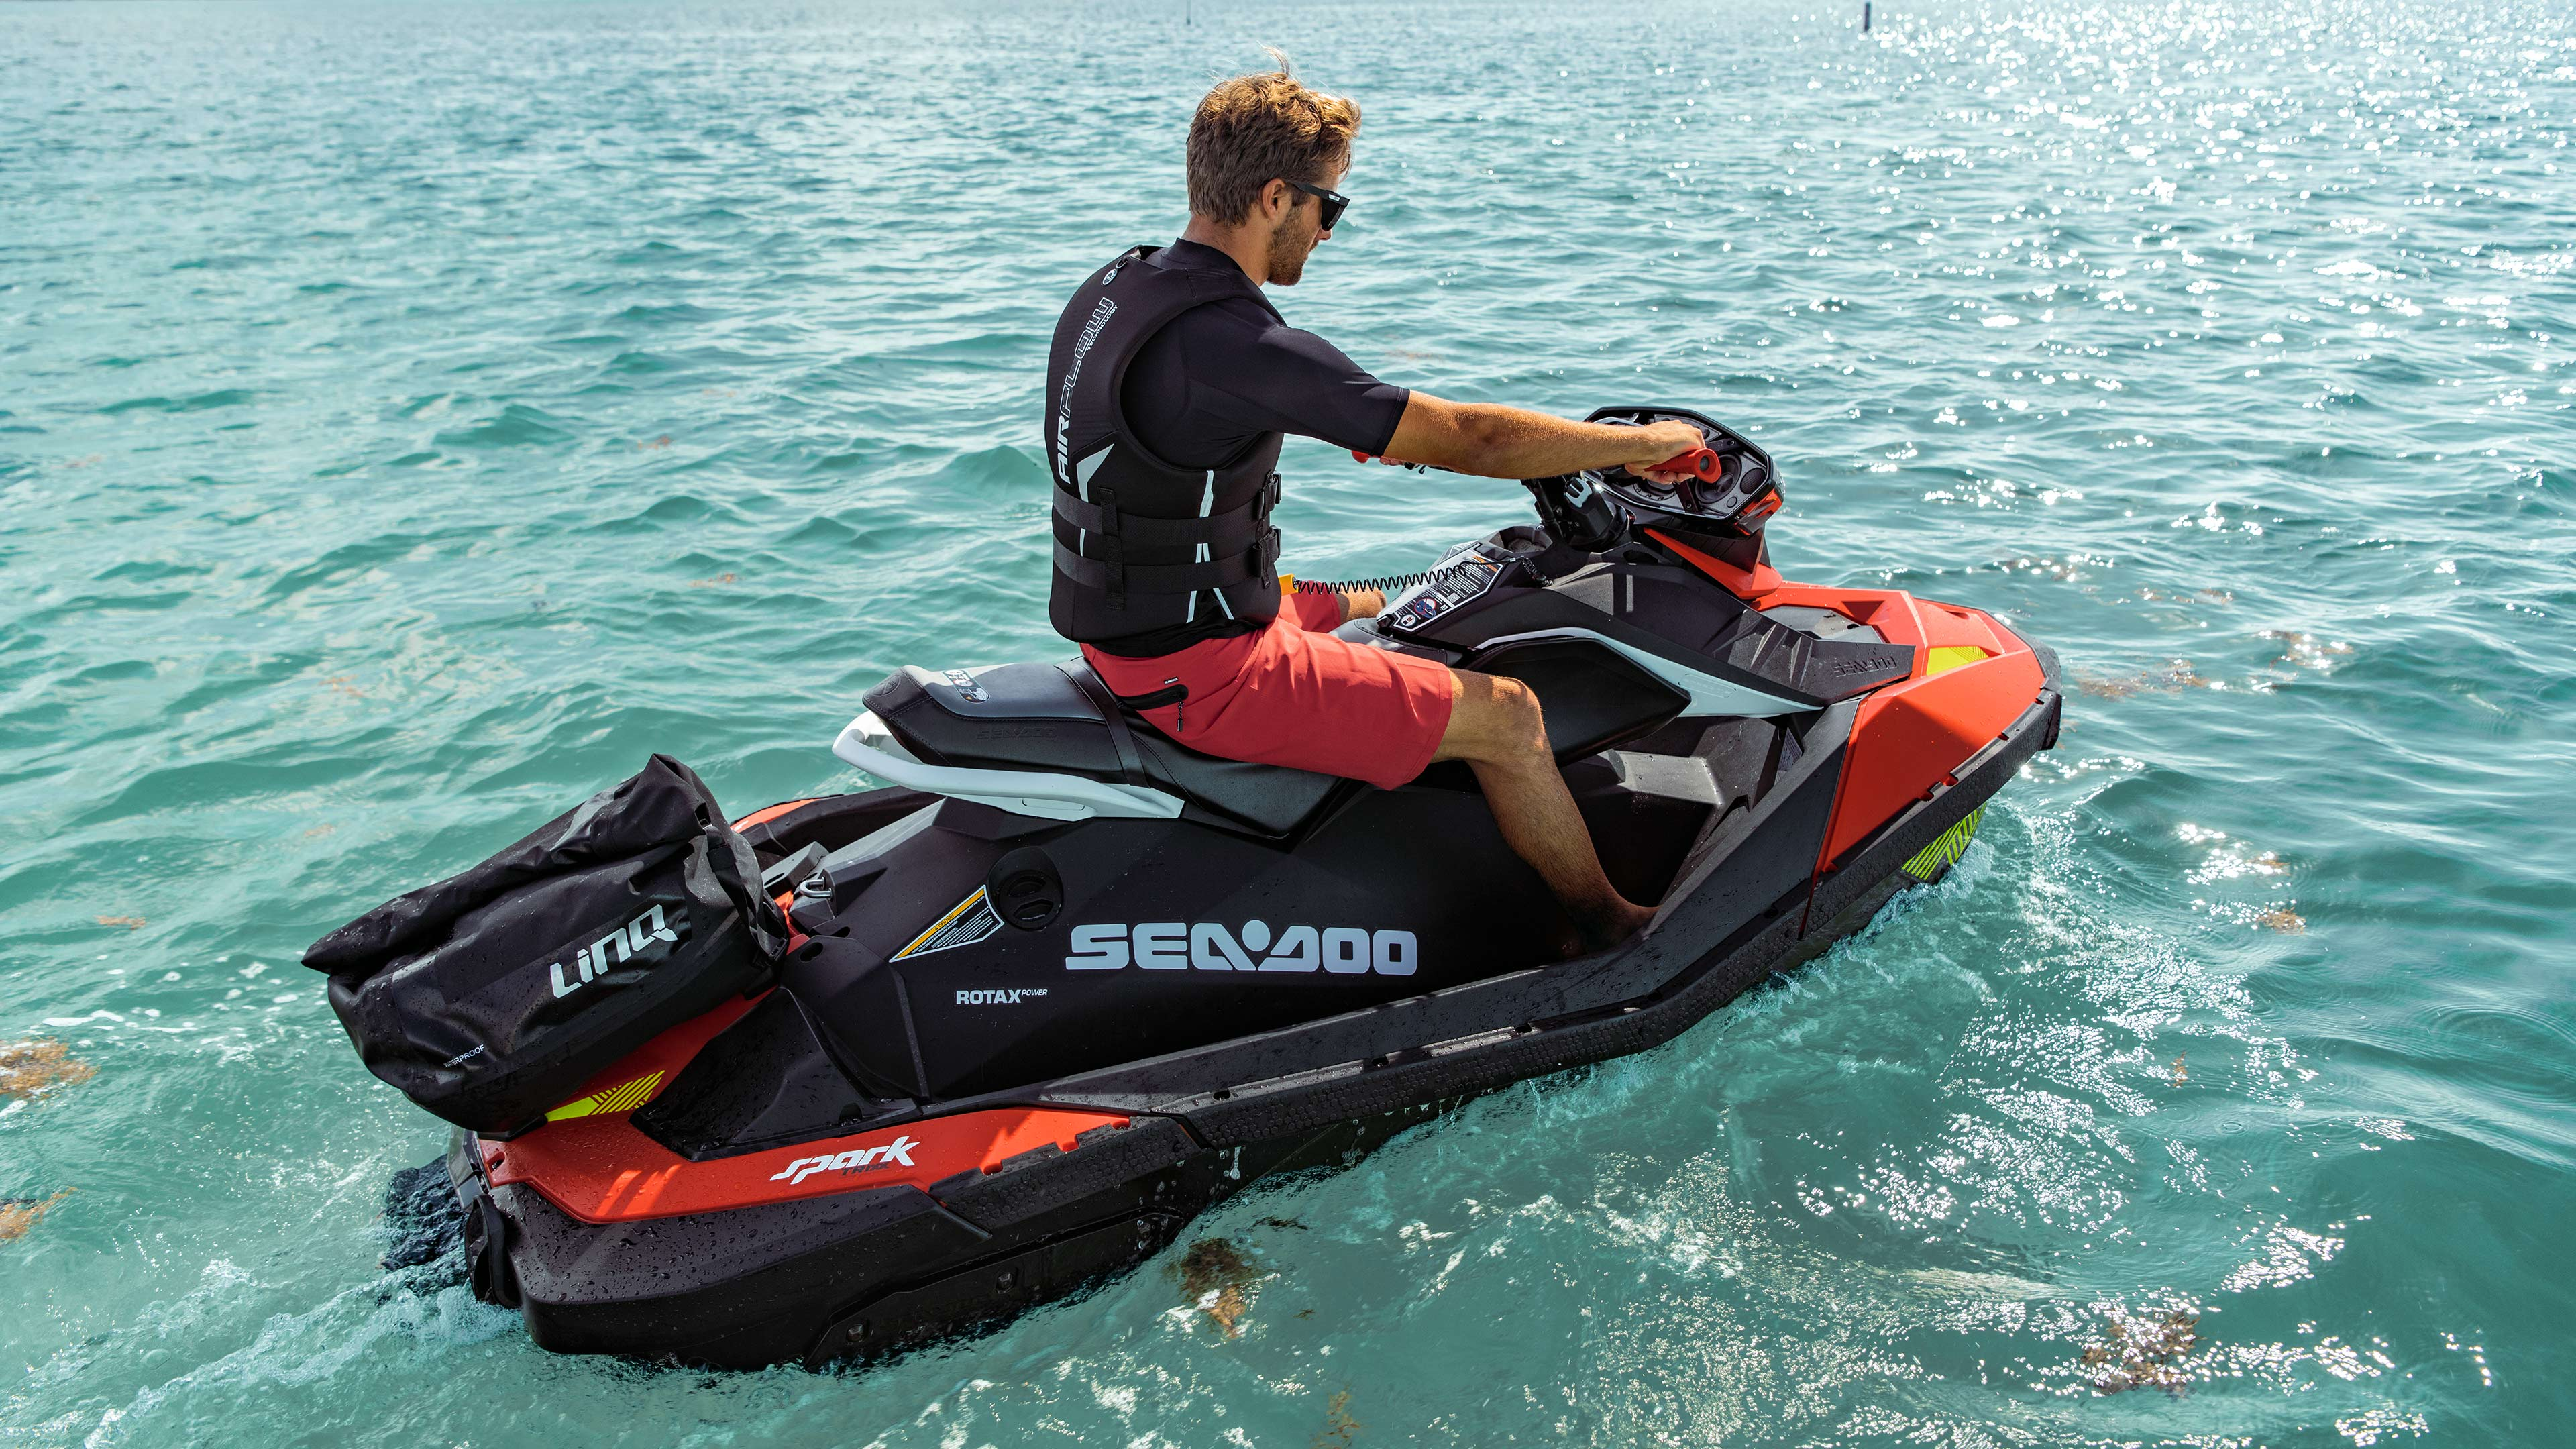 New accessories on a Sea-Doo Spark - Rec-Lite